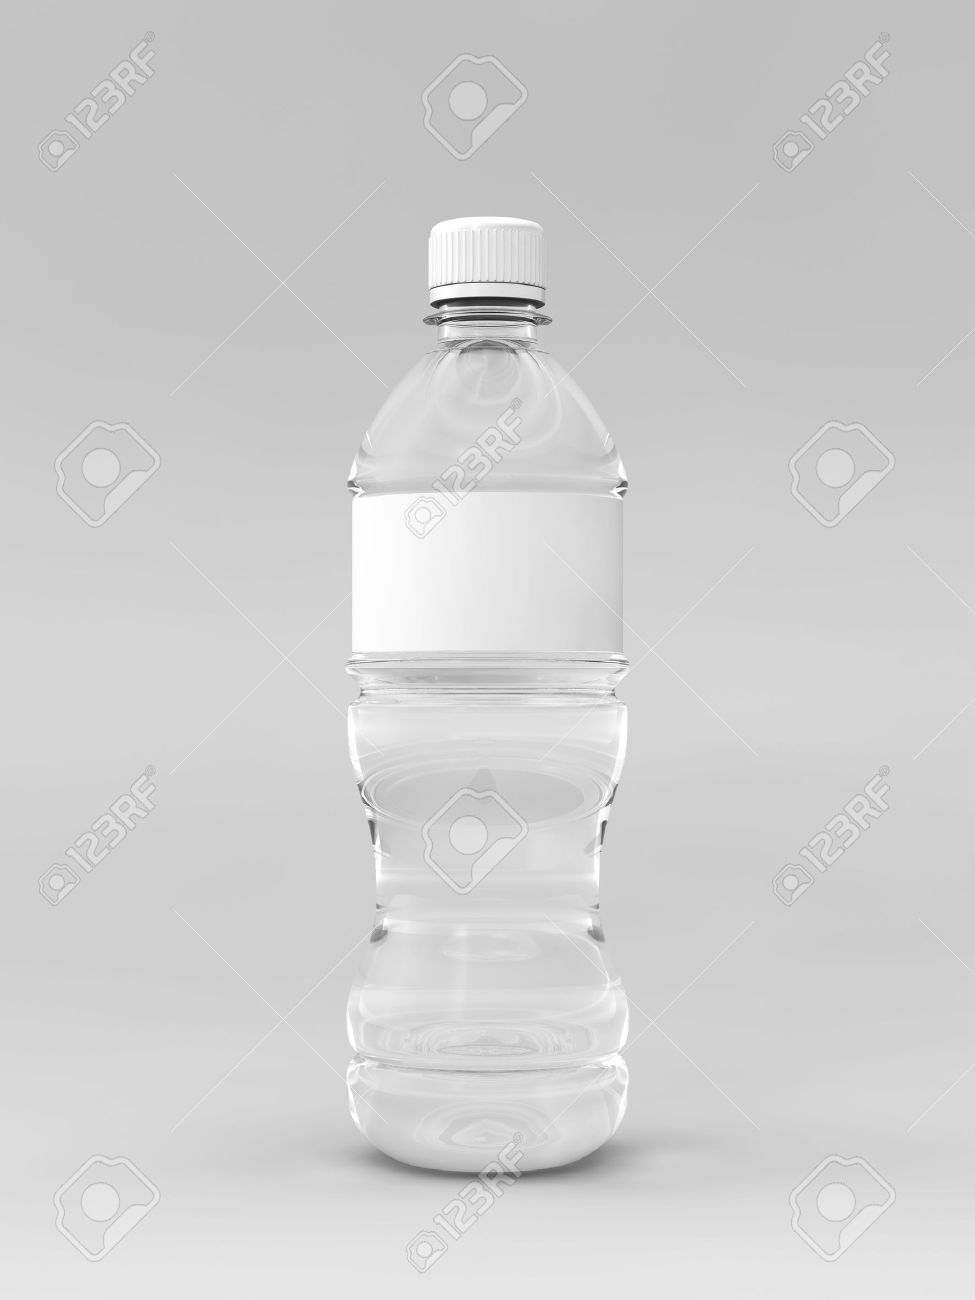 A Render Of A Labeled Water Bottle Over A Whit Background Stock ...